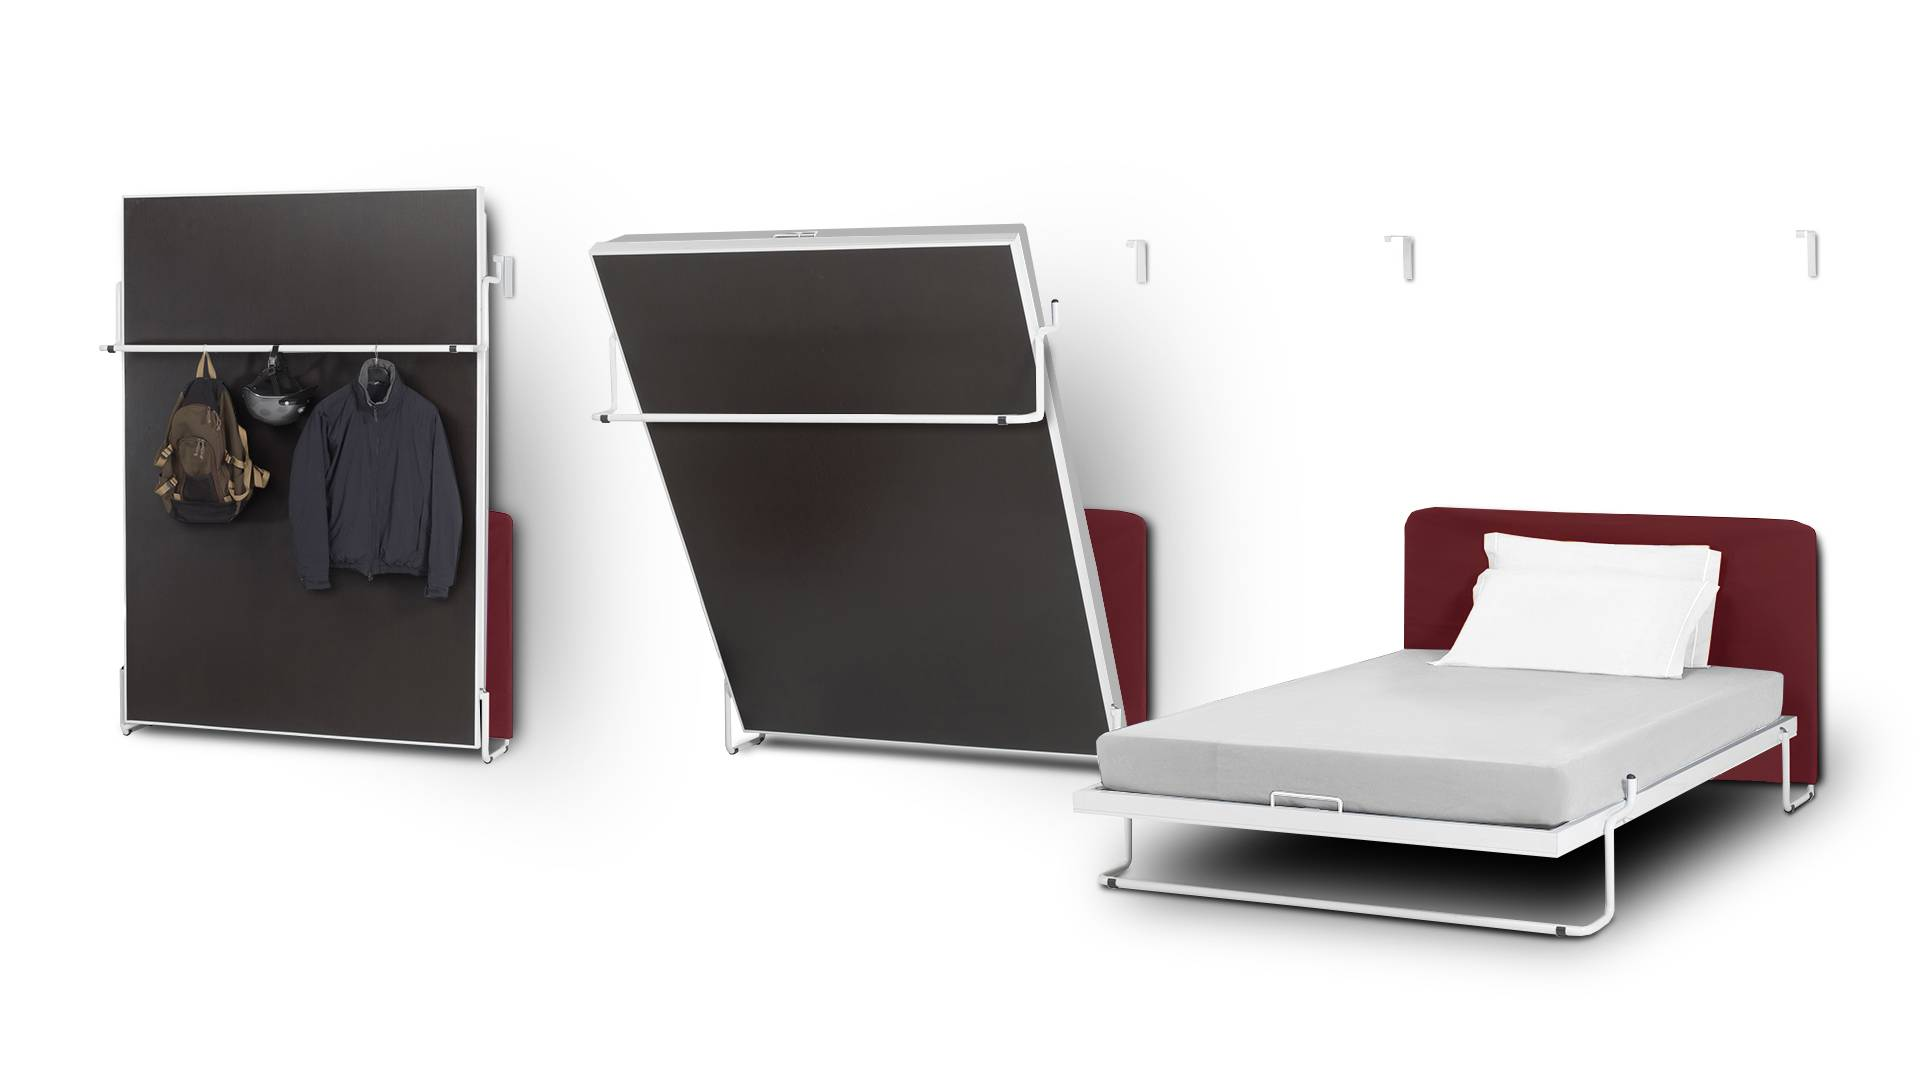 MobilierMoss Vertical bed - Cama plegable vertical